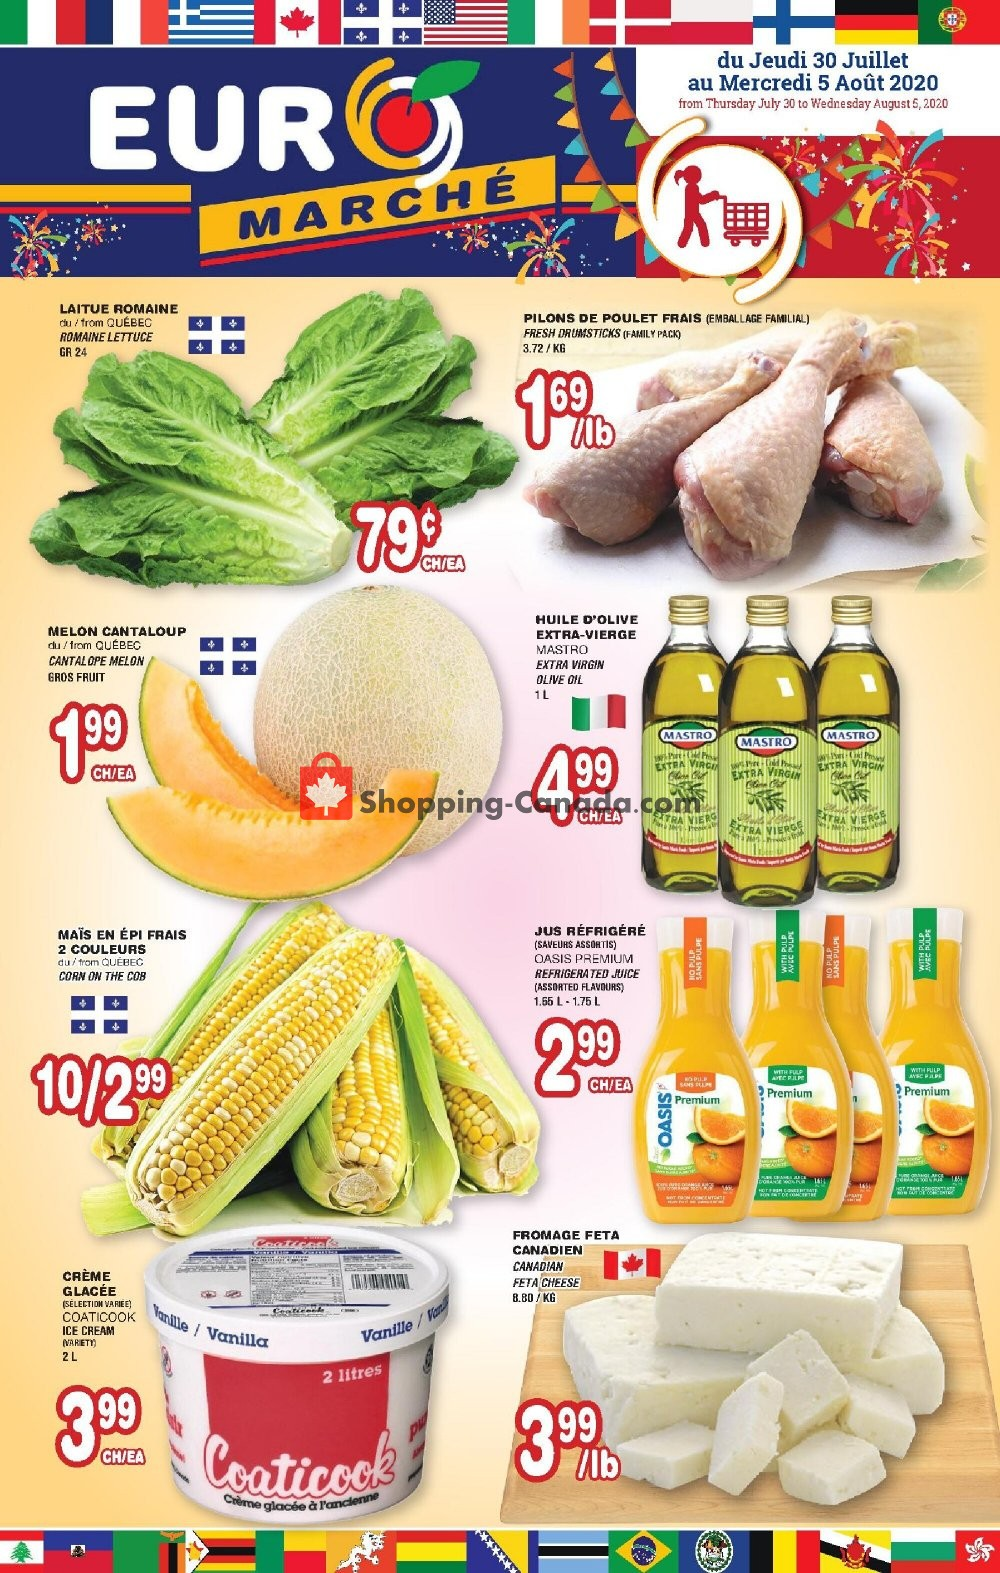 Flyer Euro Marché Canada - from Thursday July 30, 2020 to Wednesday August 5, 2020